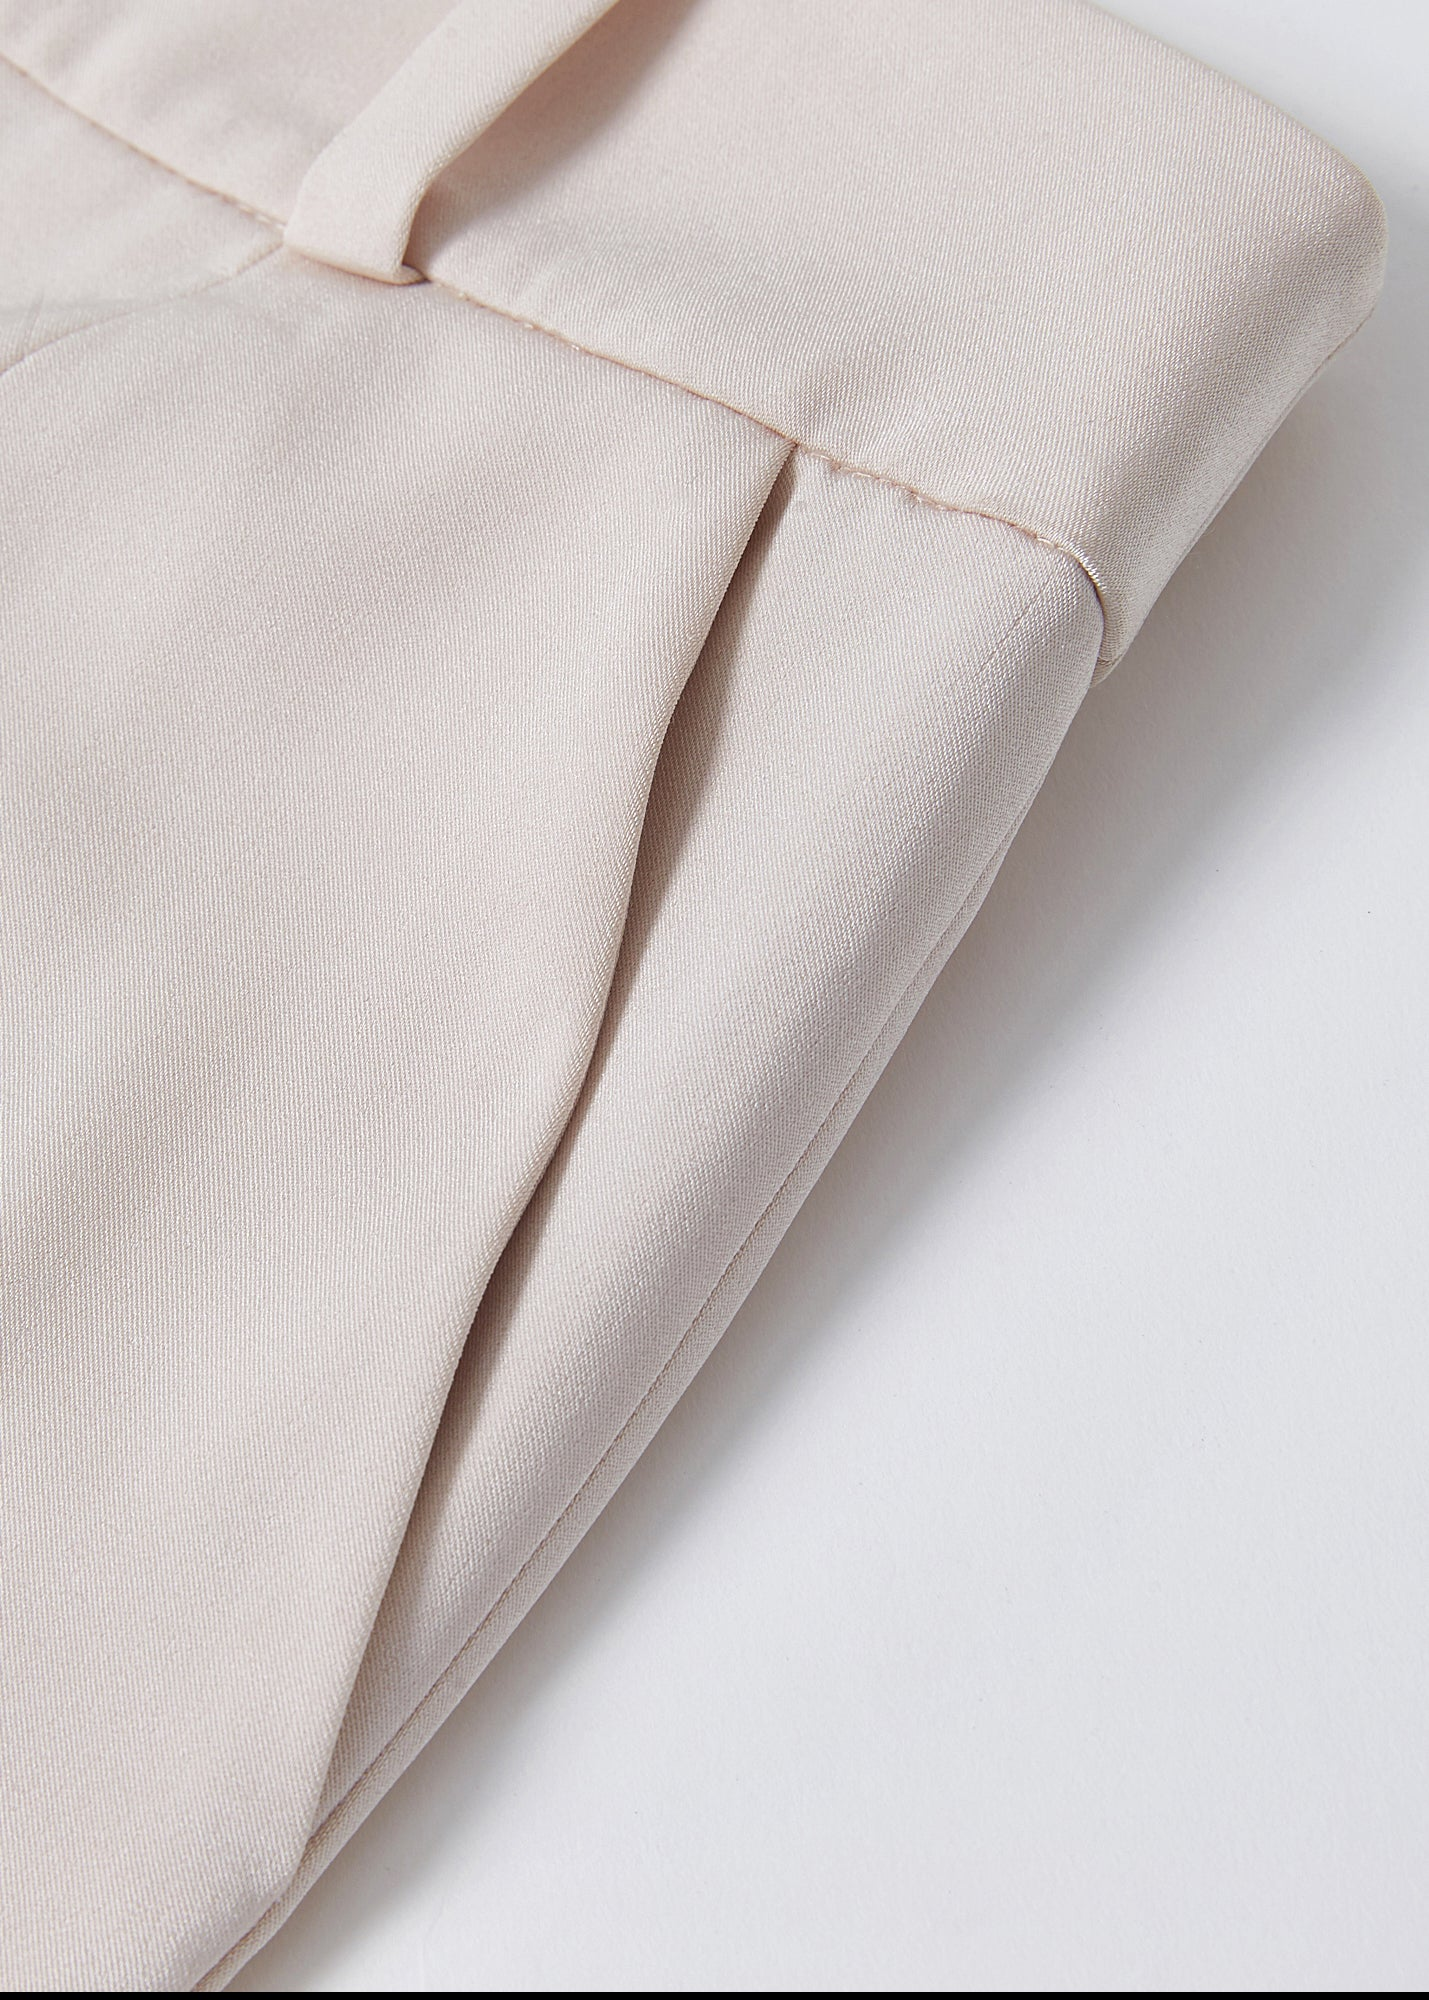 Tulipa Petal Hem Trousers in nude